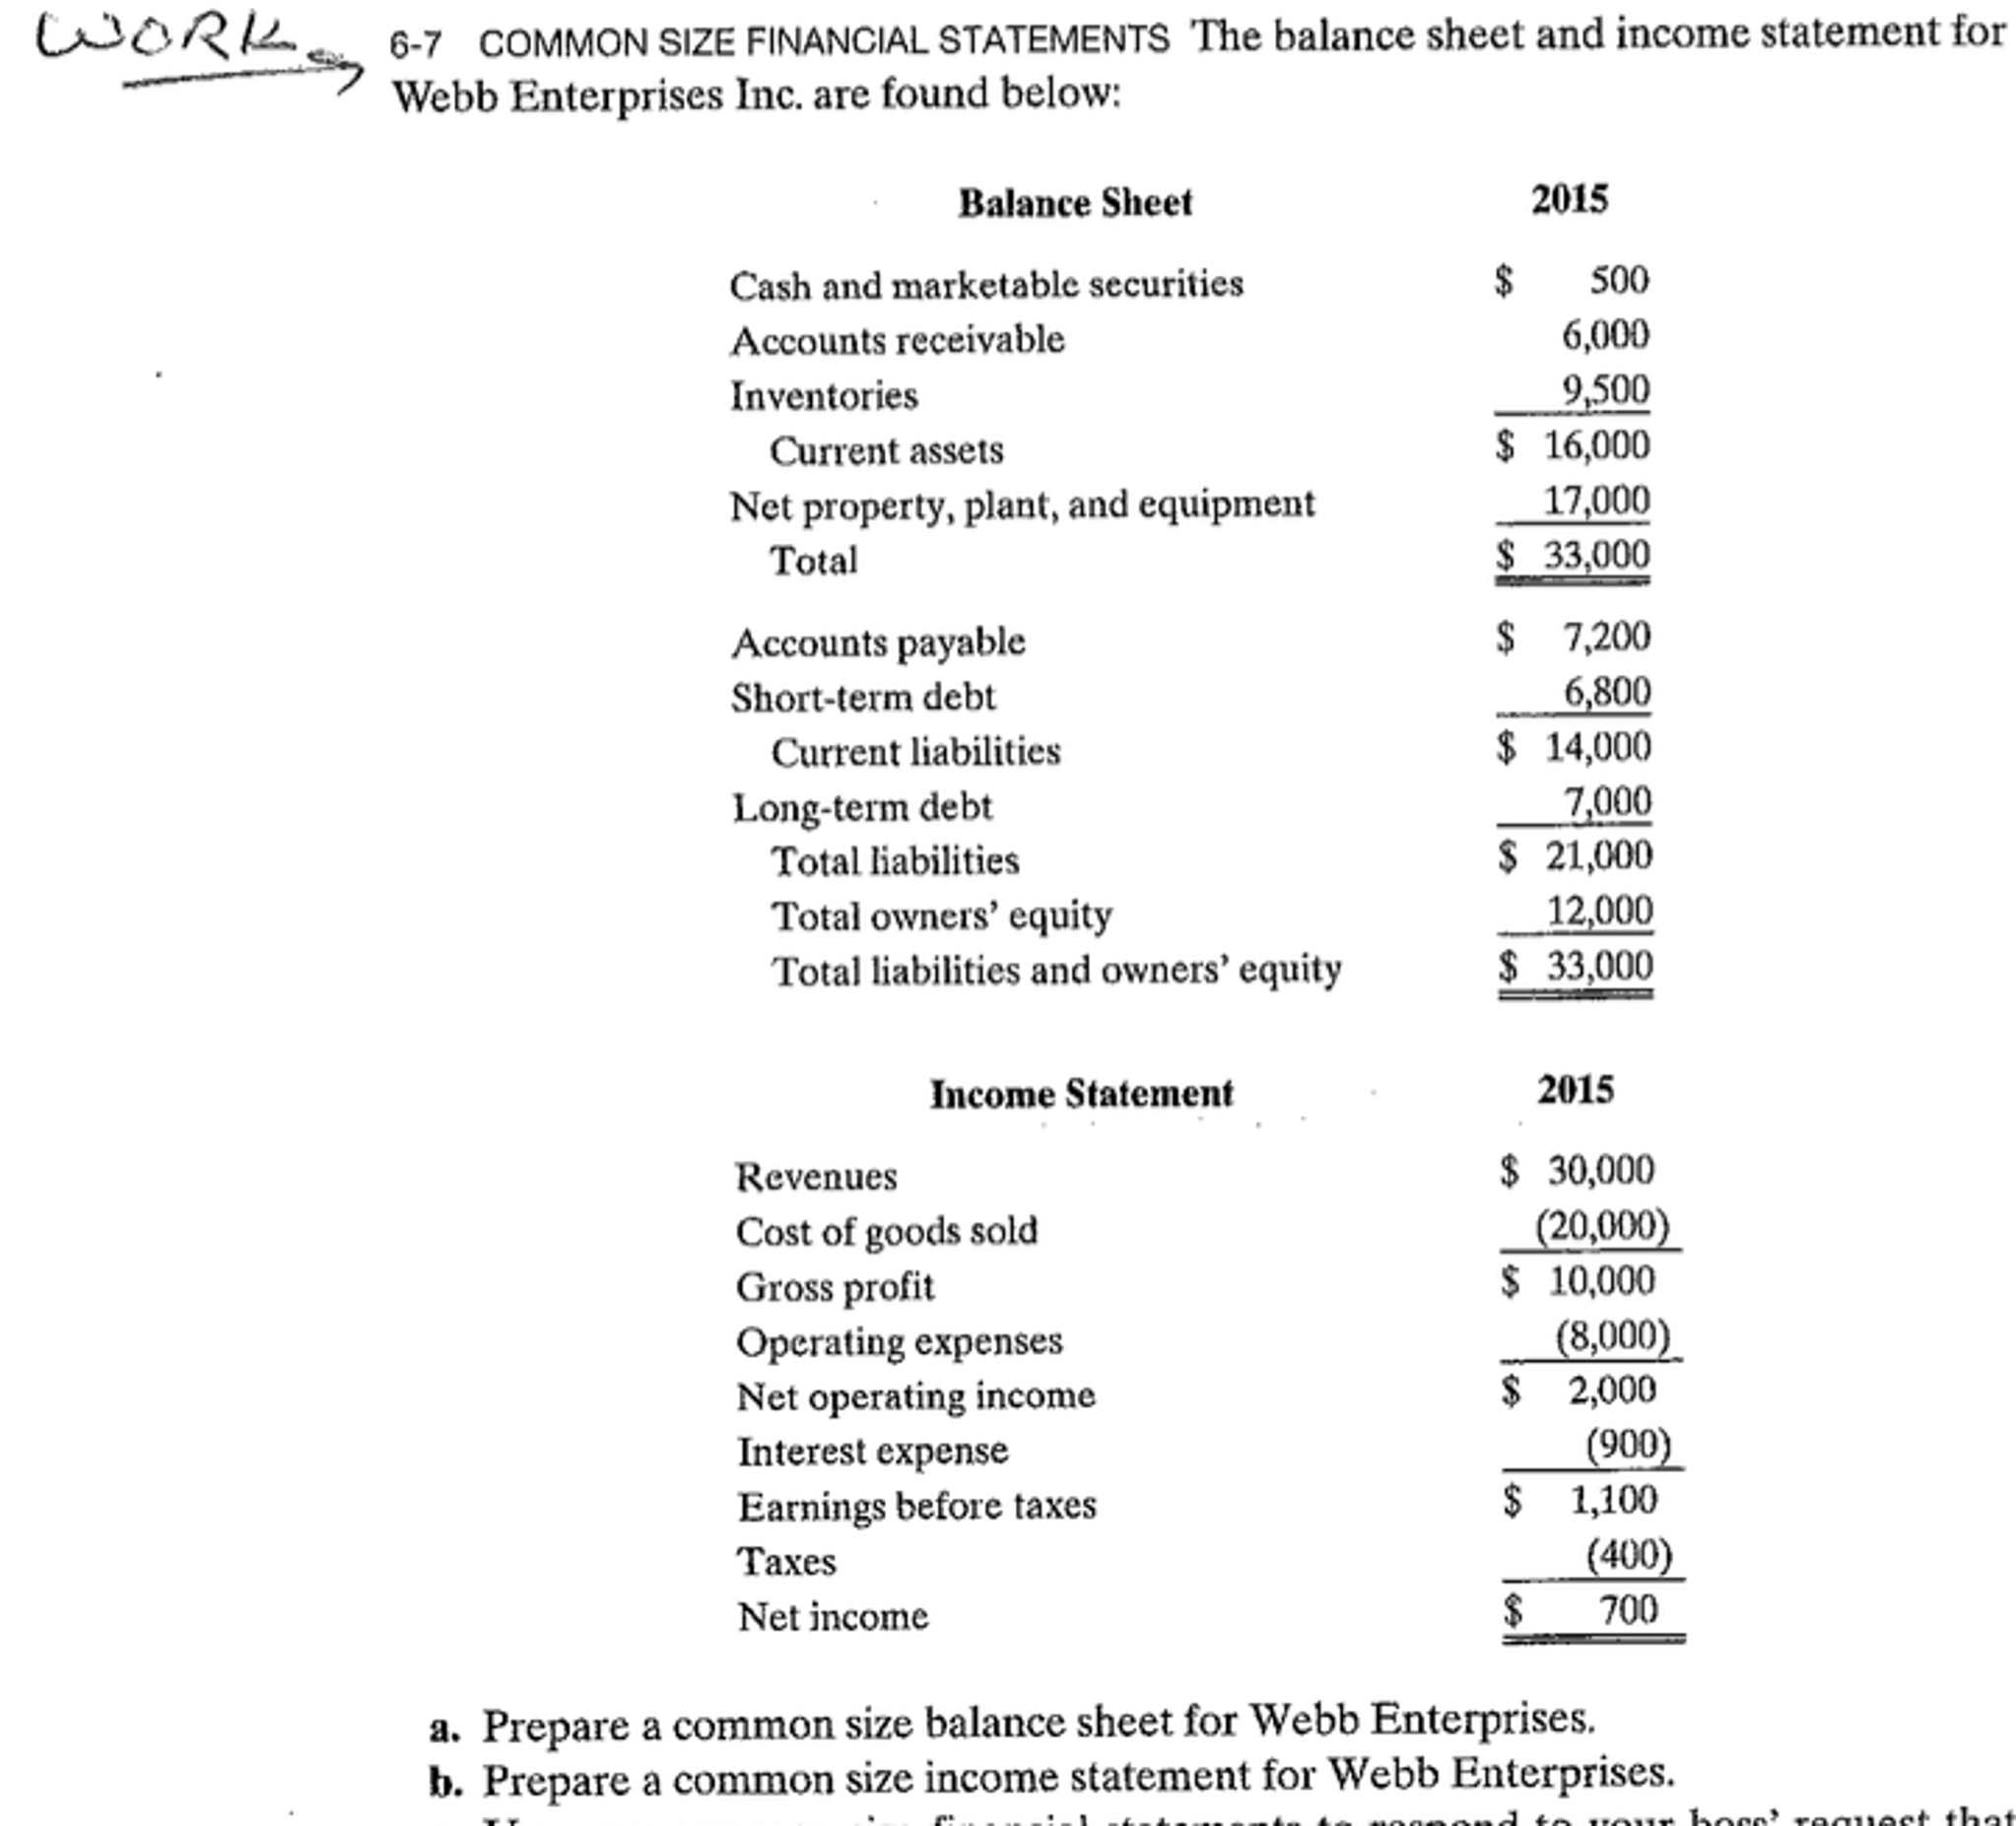 solved the balance sheet and income statement for webb en